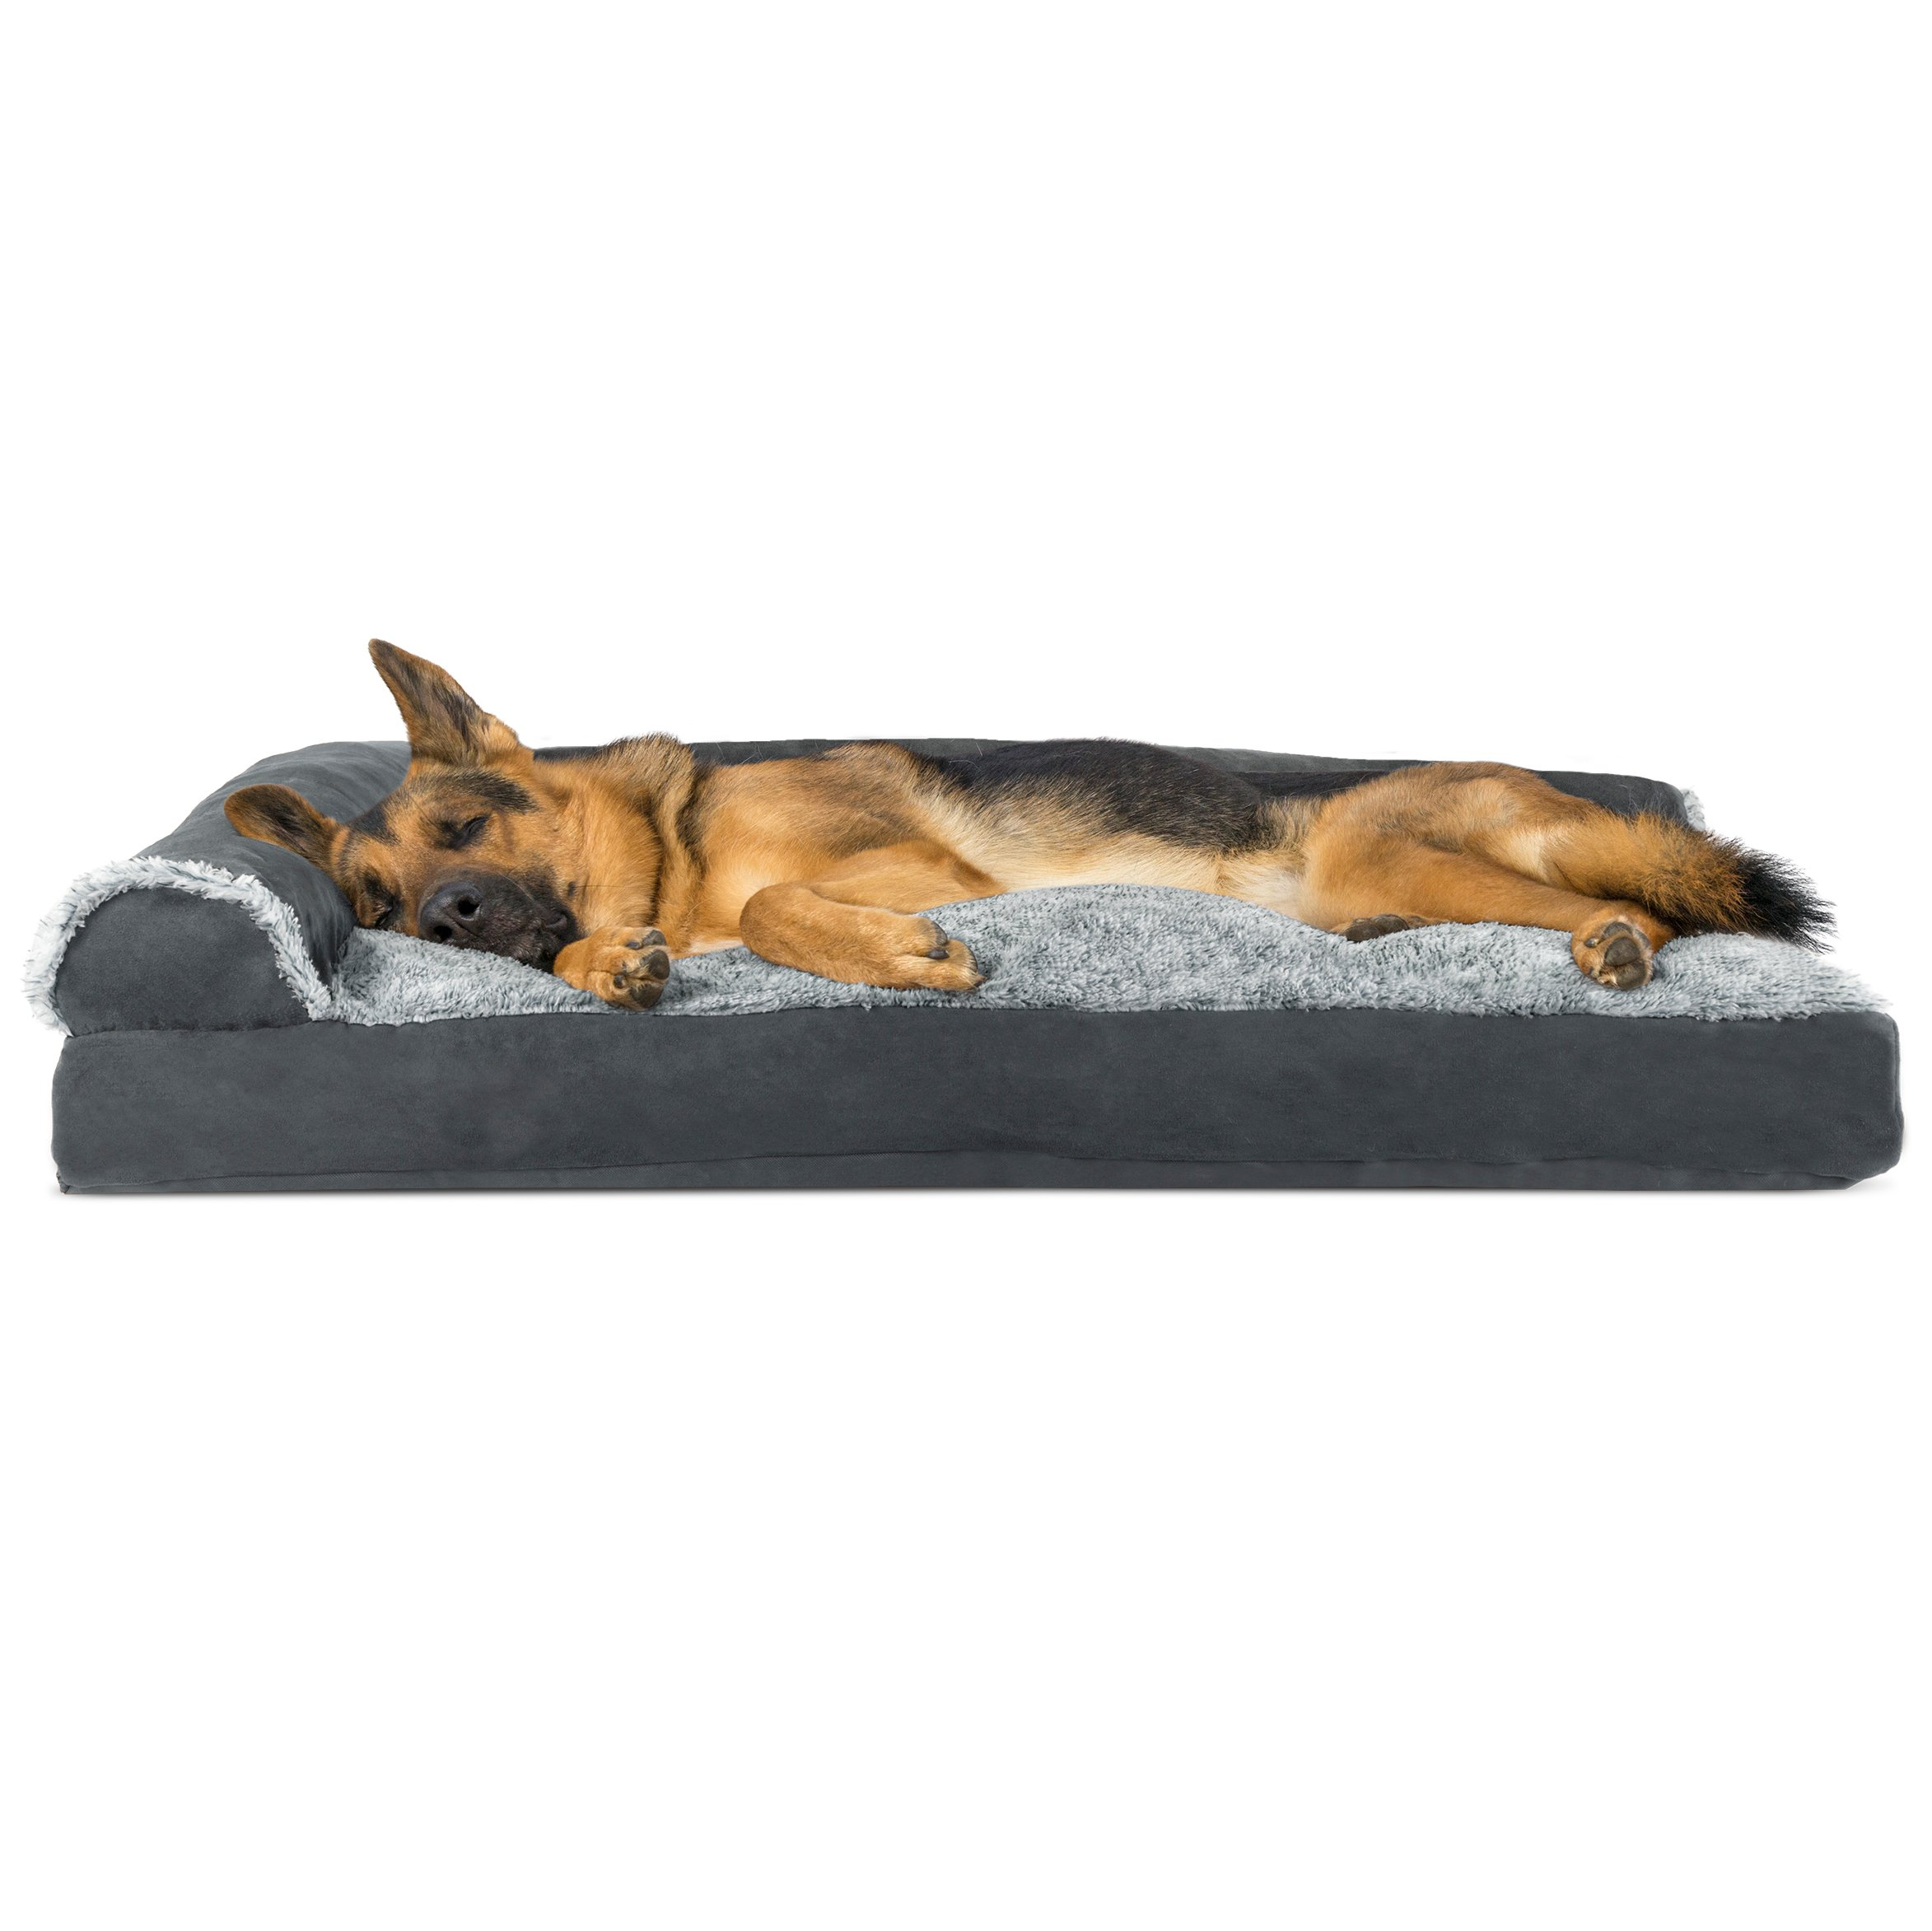 Furhaven Pet Dog Bed | Two-Tone Plush Faux Fur & Suede L Shaped Chaise Lounge Pillow Cushion Sofa-Style Living Room Corner Couch Pet Bed w/ Removable Cover for Dogs & Cats, Stone Gray, Jumbo by Furhaven